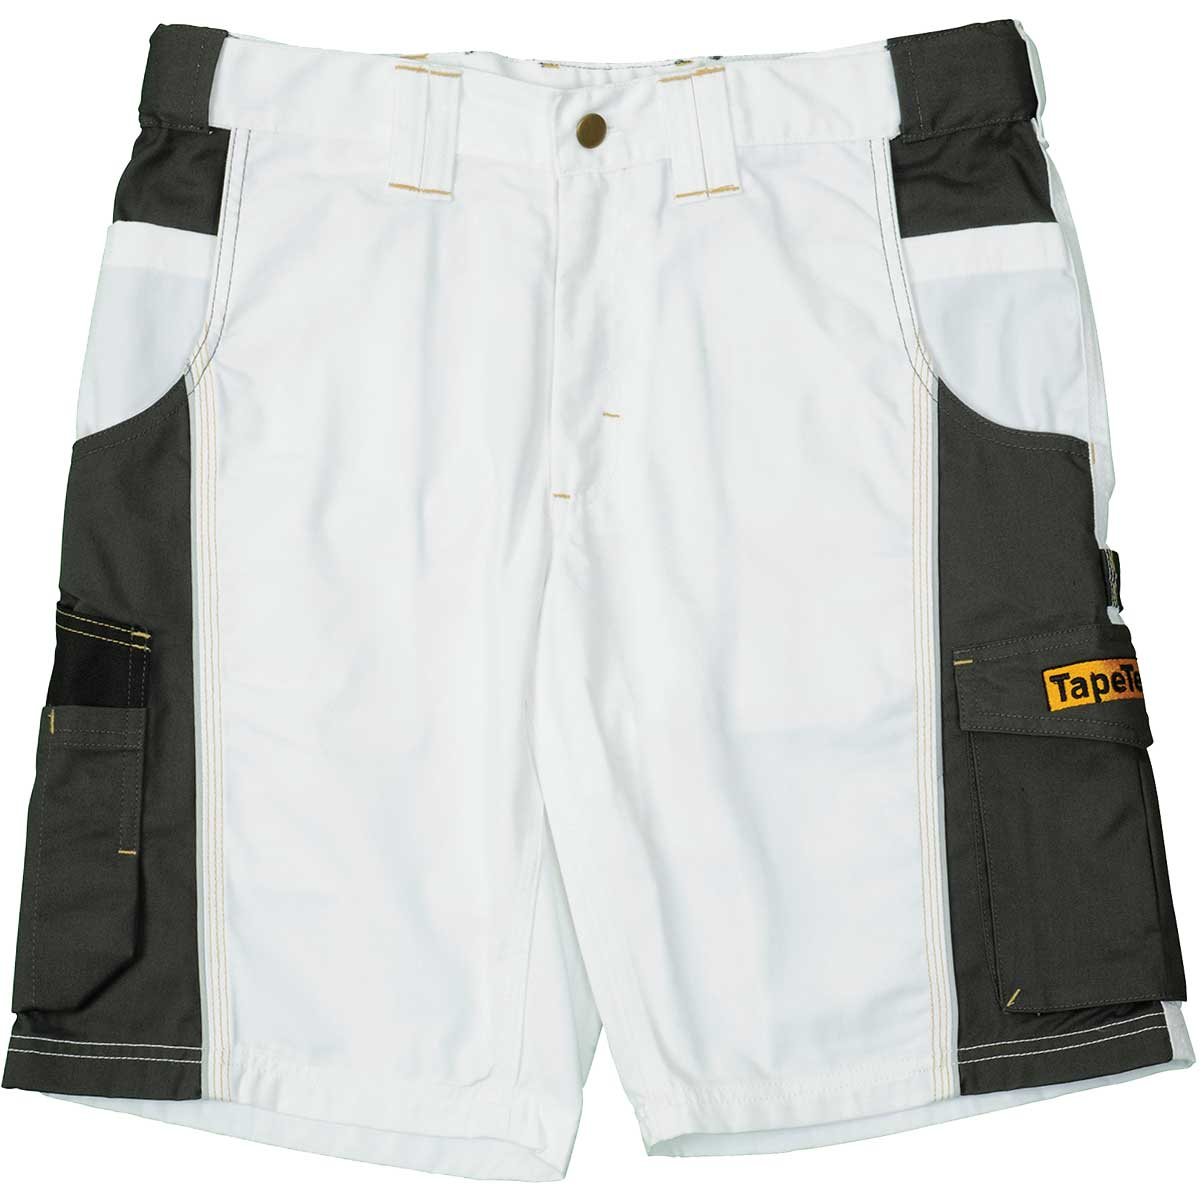 TapeTech Premium Work Shorts Size - 56